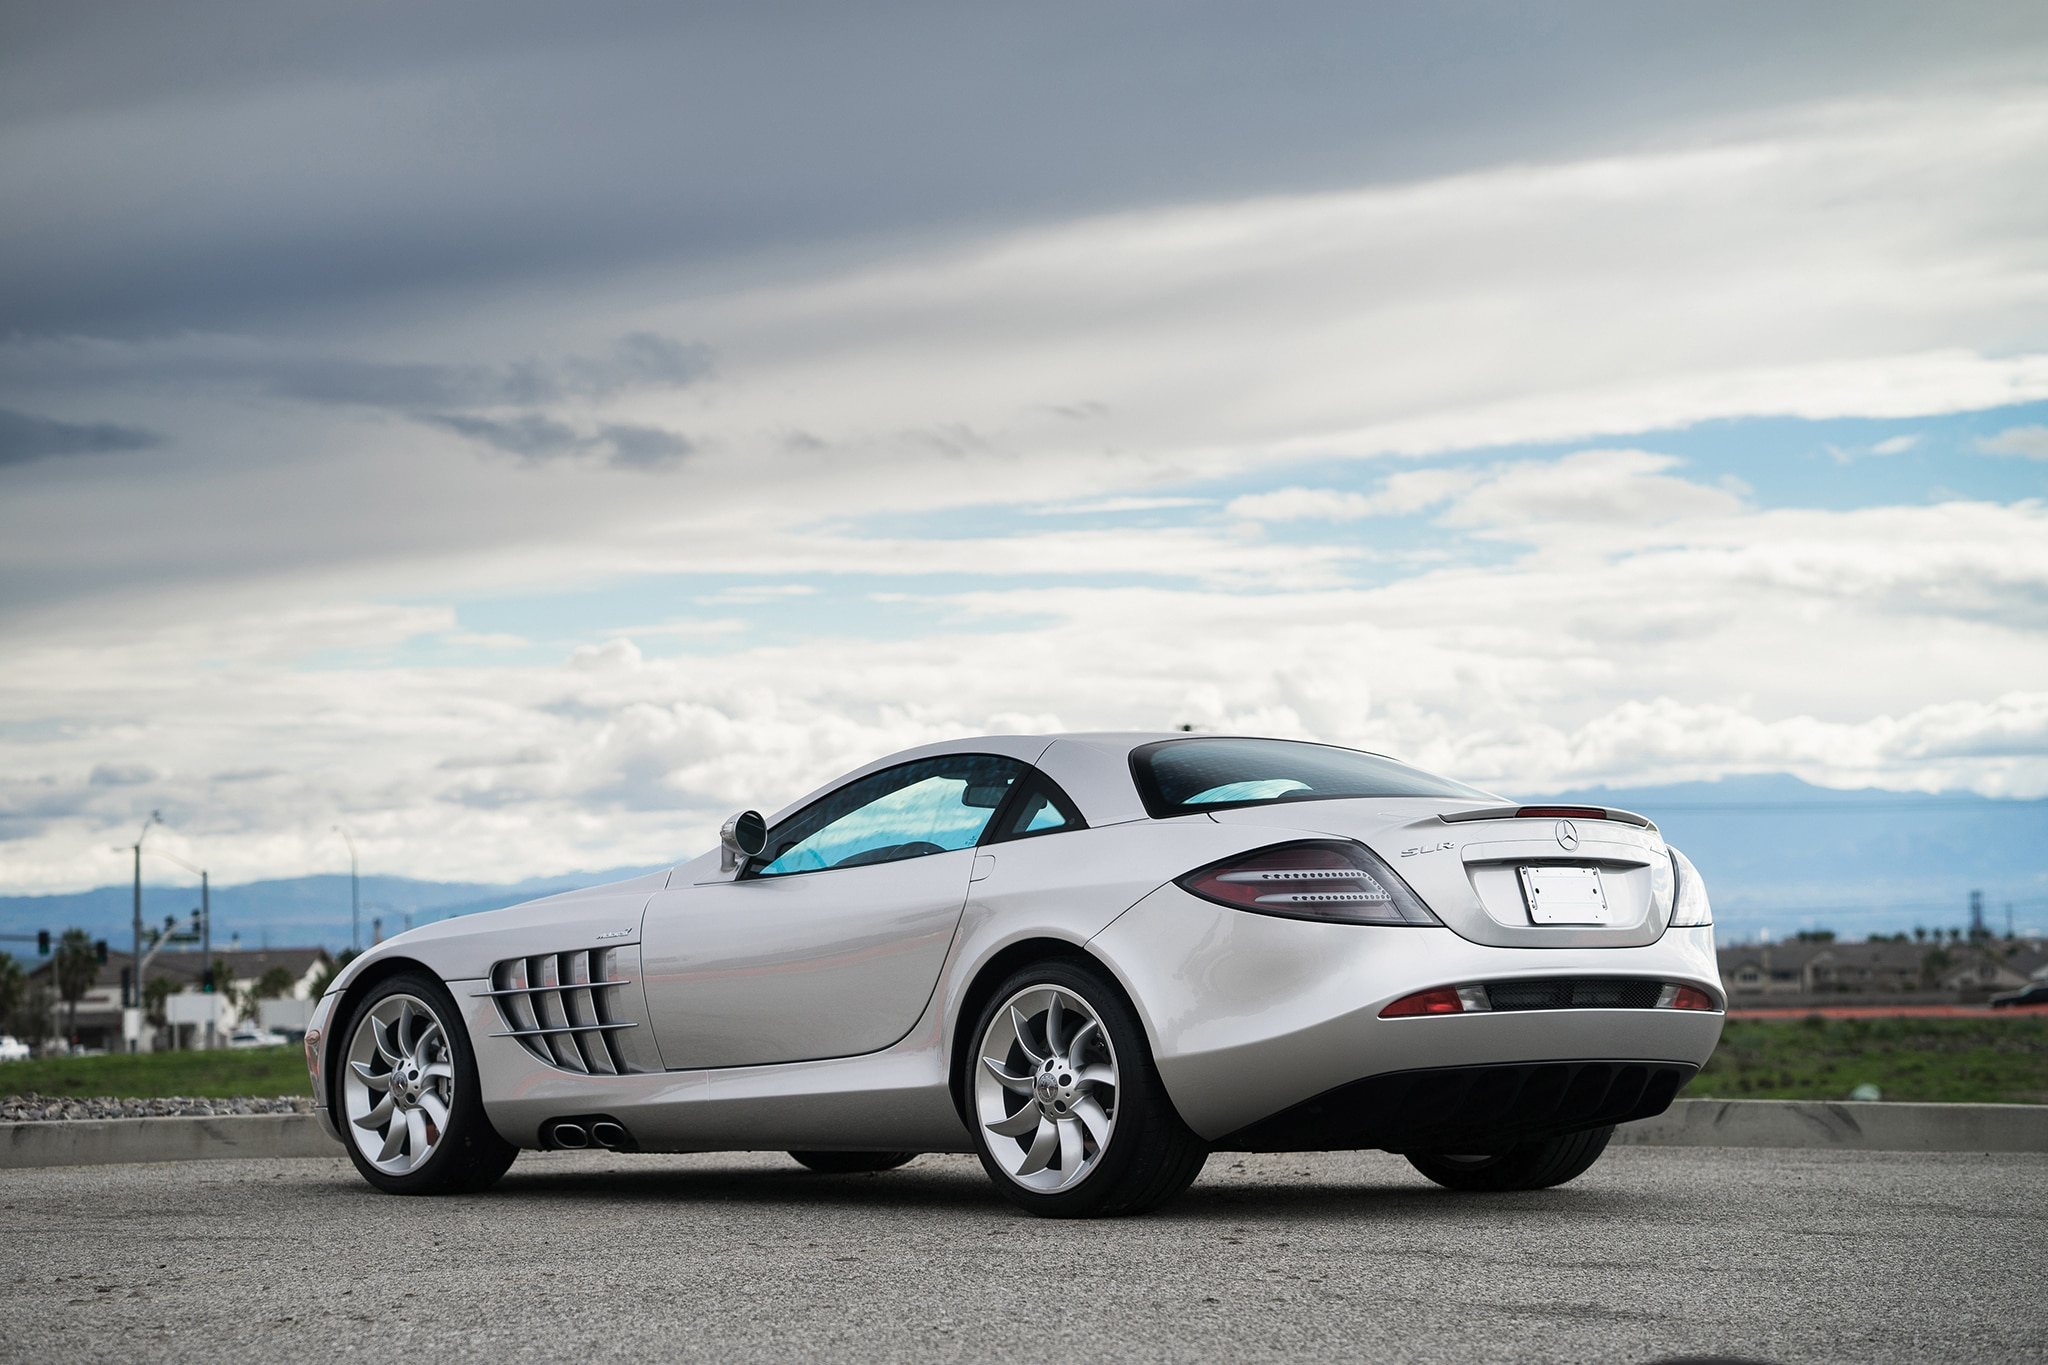 Just listed 2006 mercedes benz slr mclaren coupe for Mercedes benz slr mclaren price